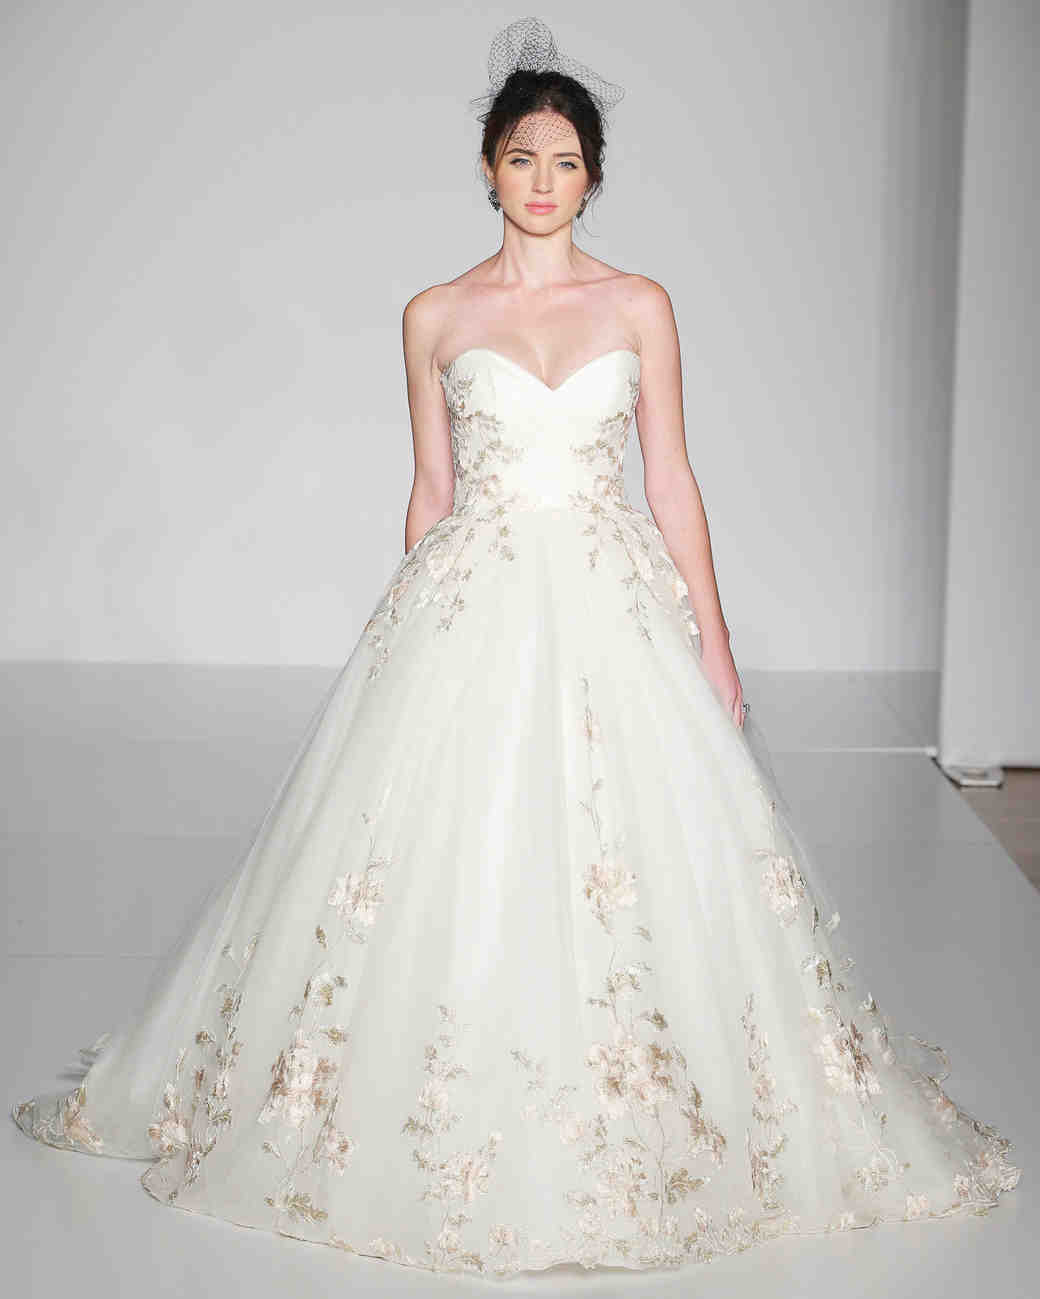 Ultra romantic floral wedding dresses martha stewart for Floral dresses for weddings